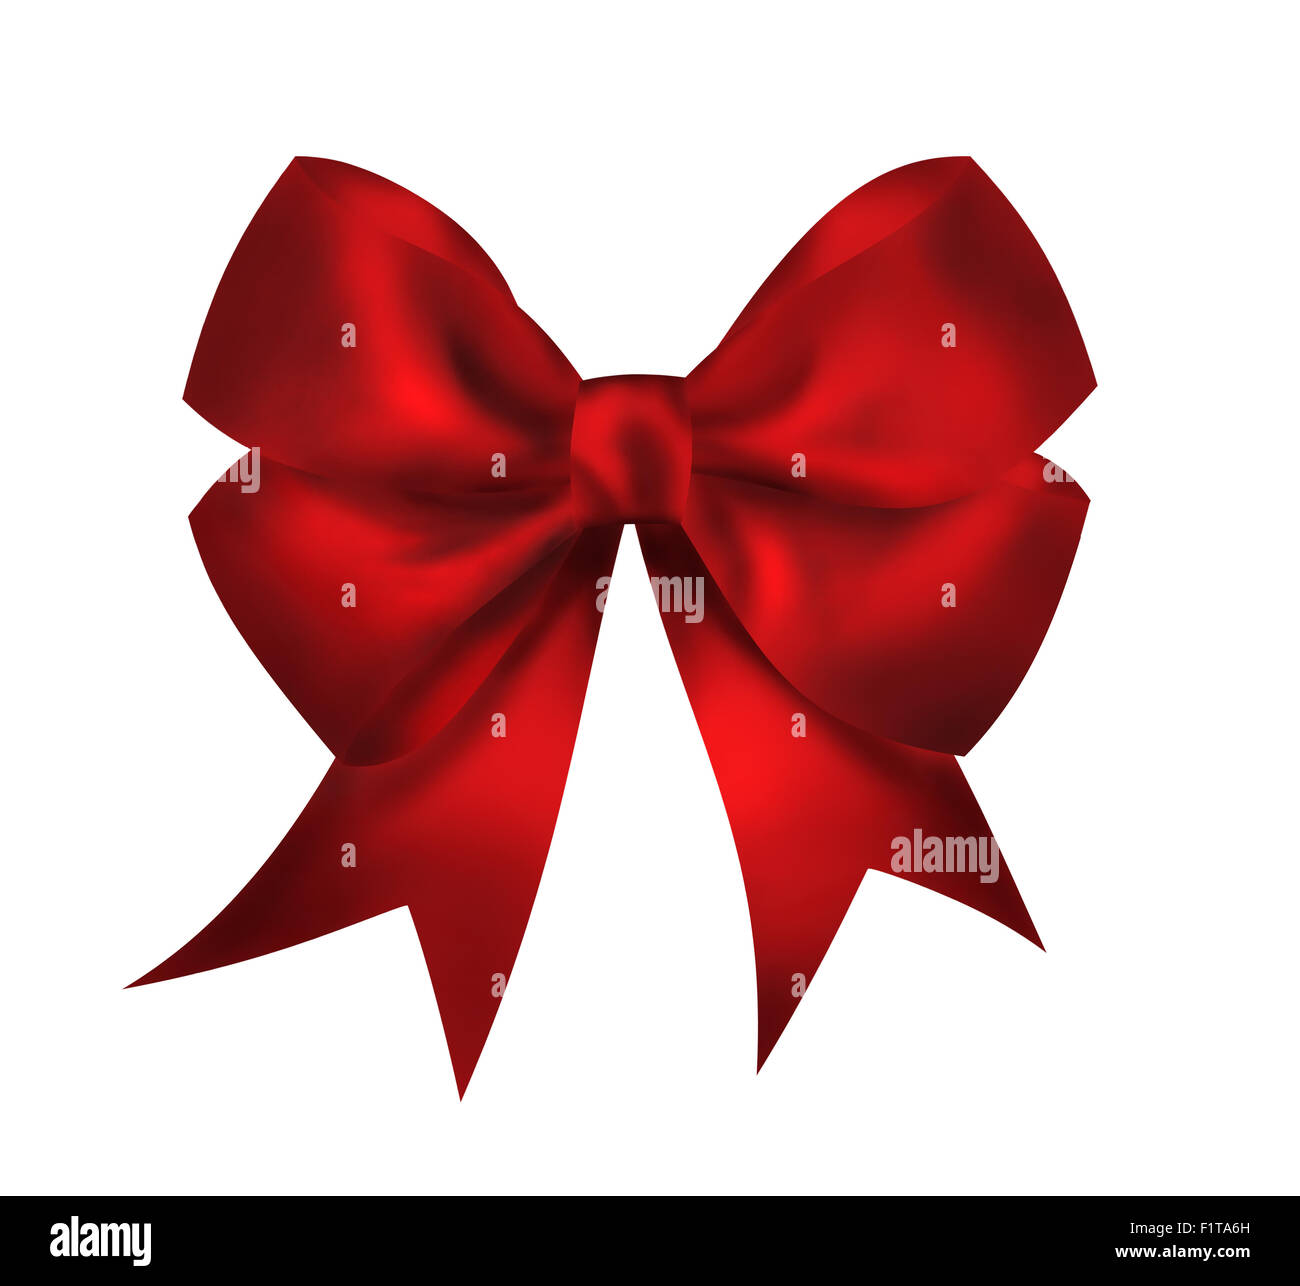 Realistic bright red bow isolated on white background. Closeup illustration - Stock Image